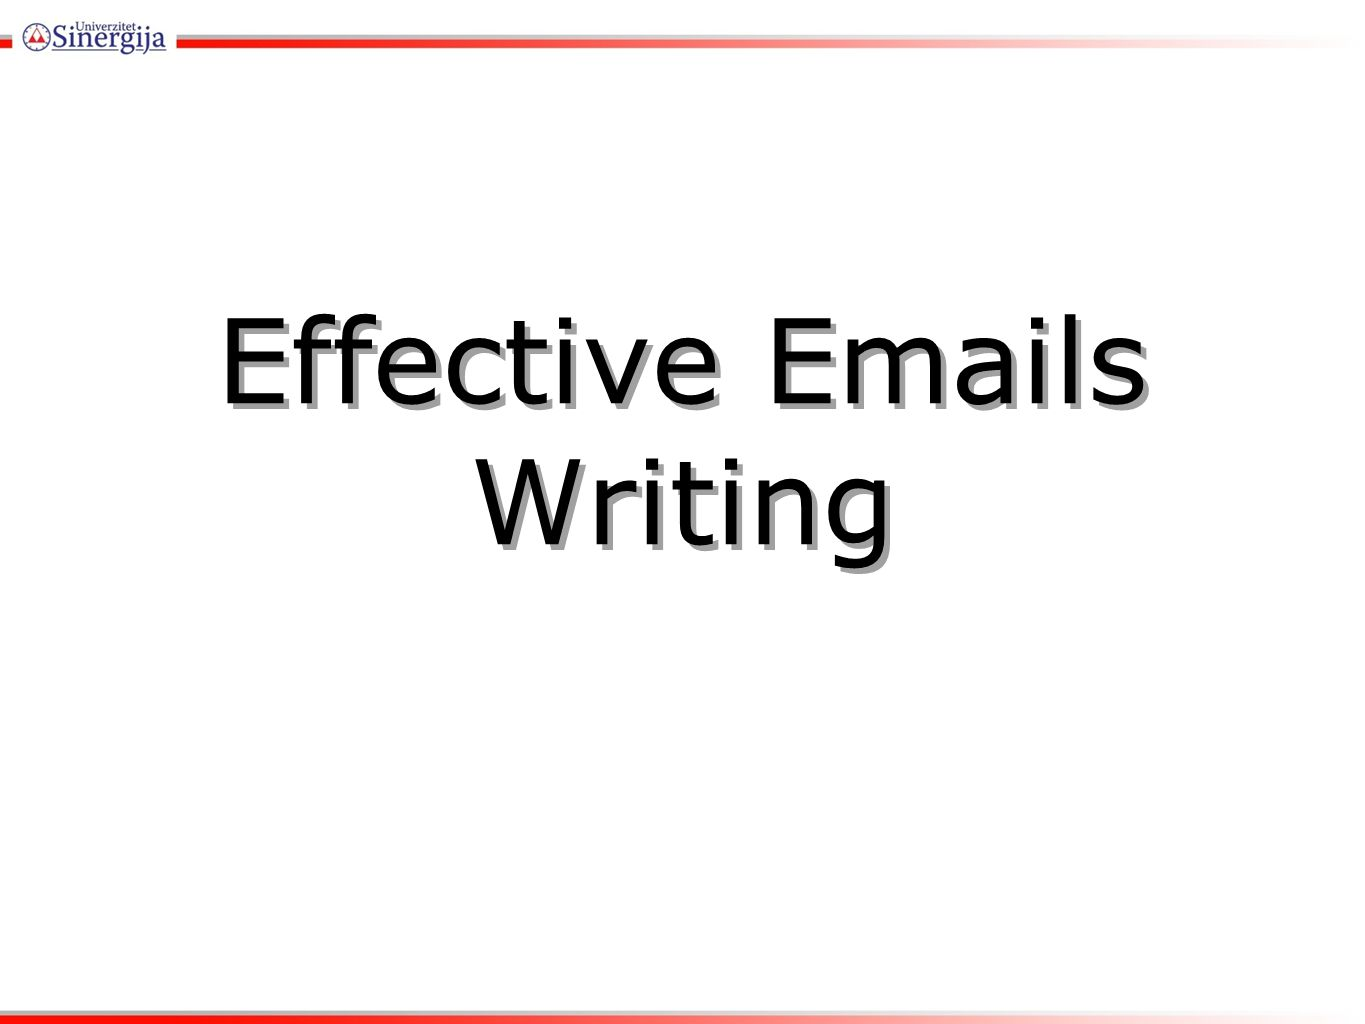 Effective Emails Writing Effective Emails RMU 3-19-08